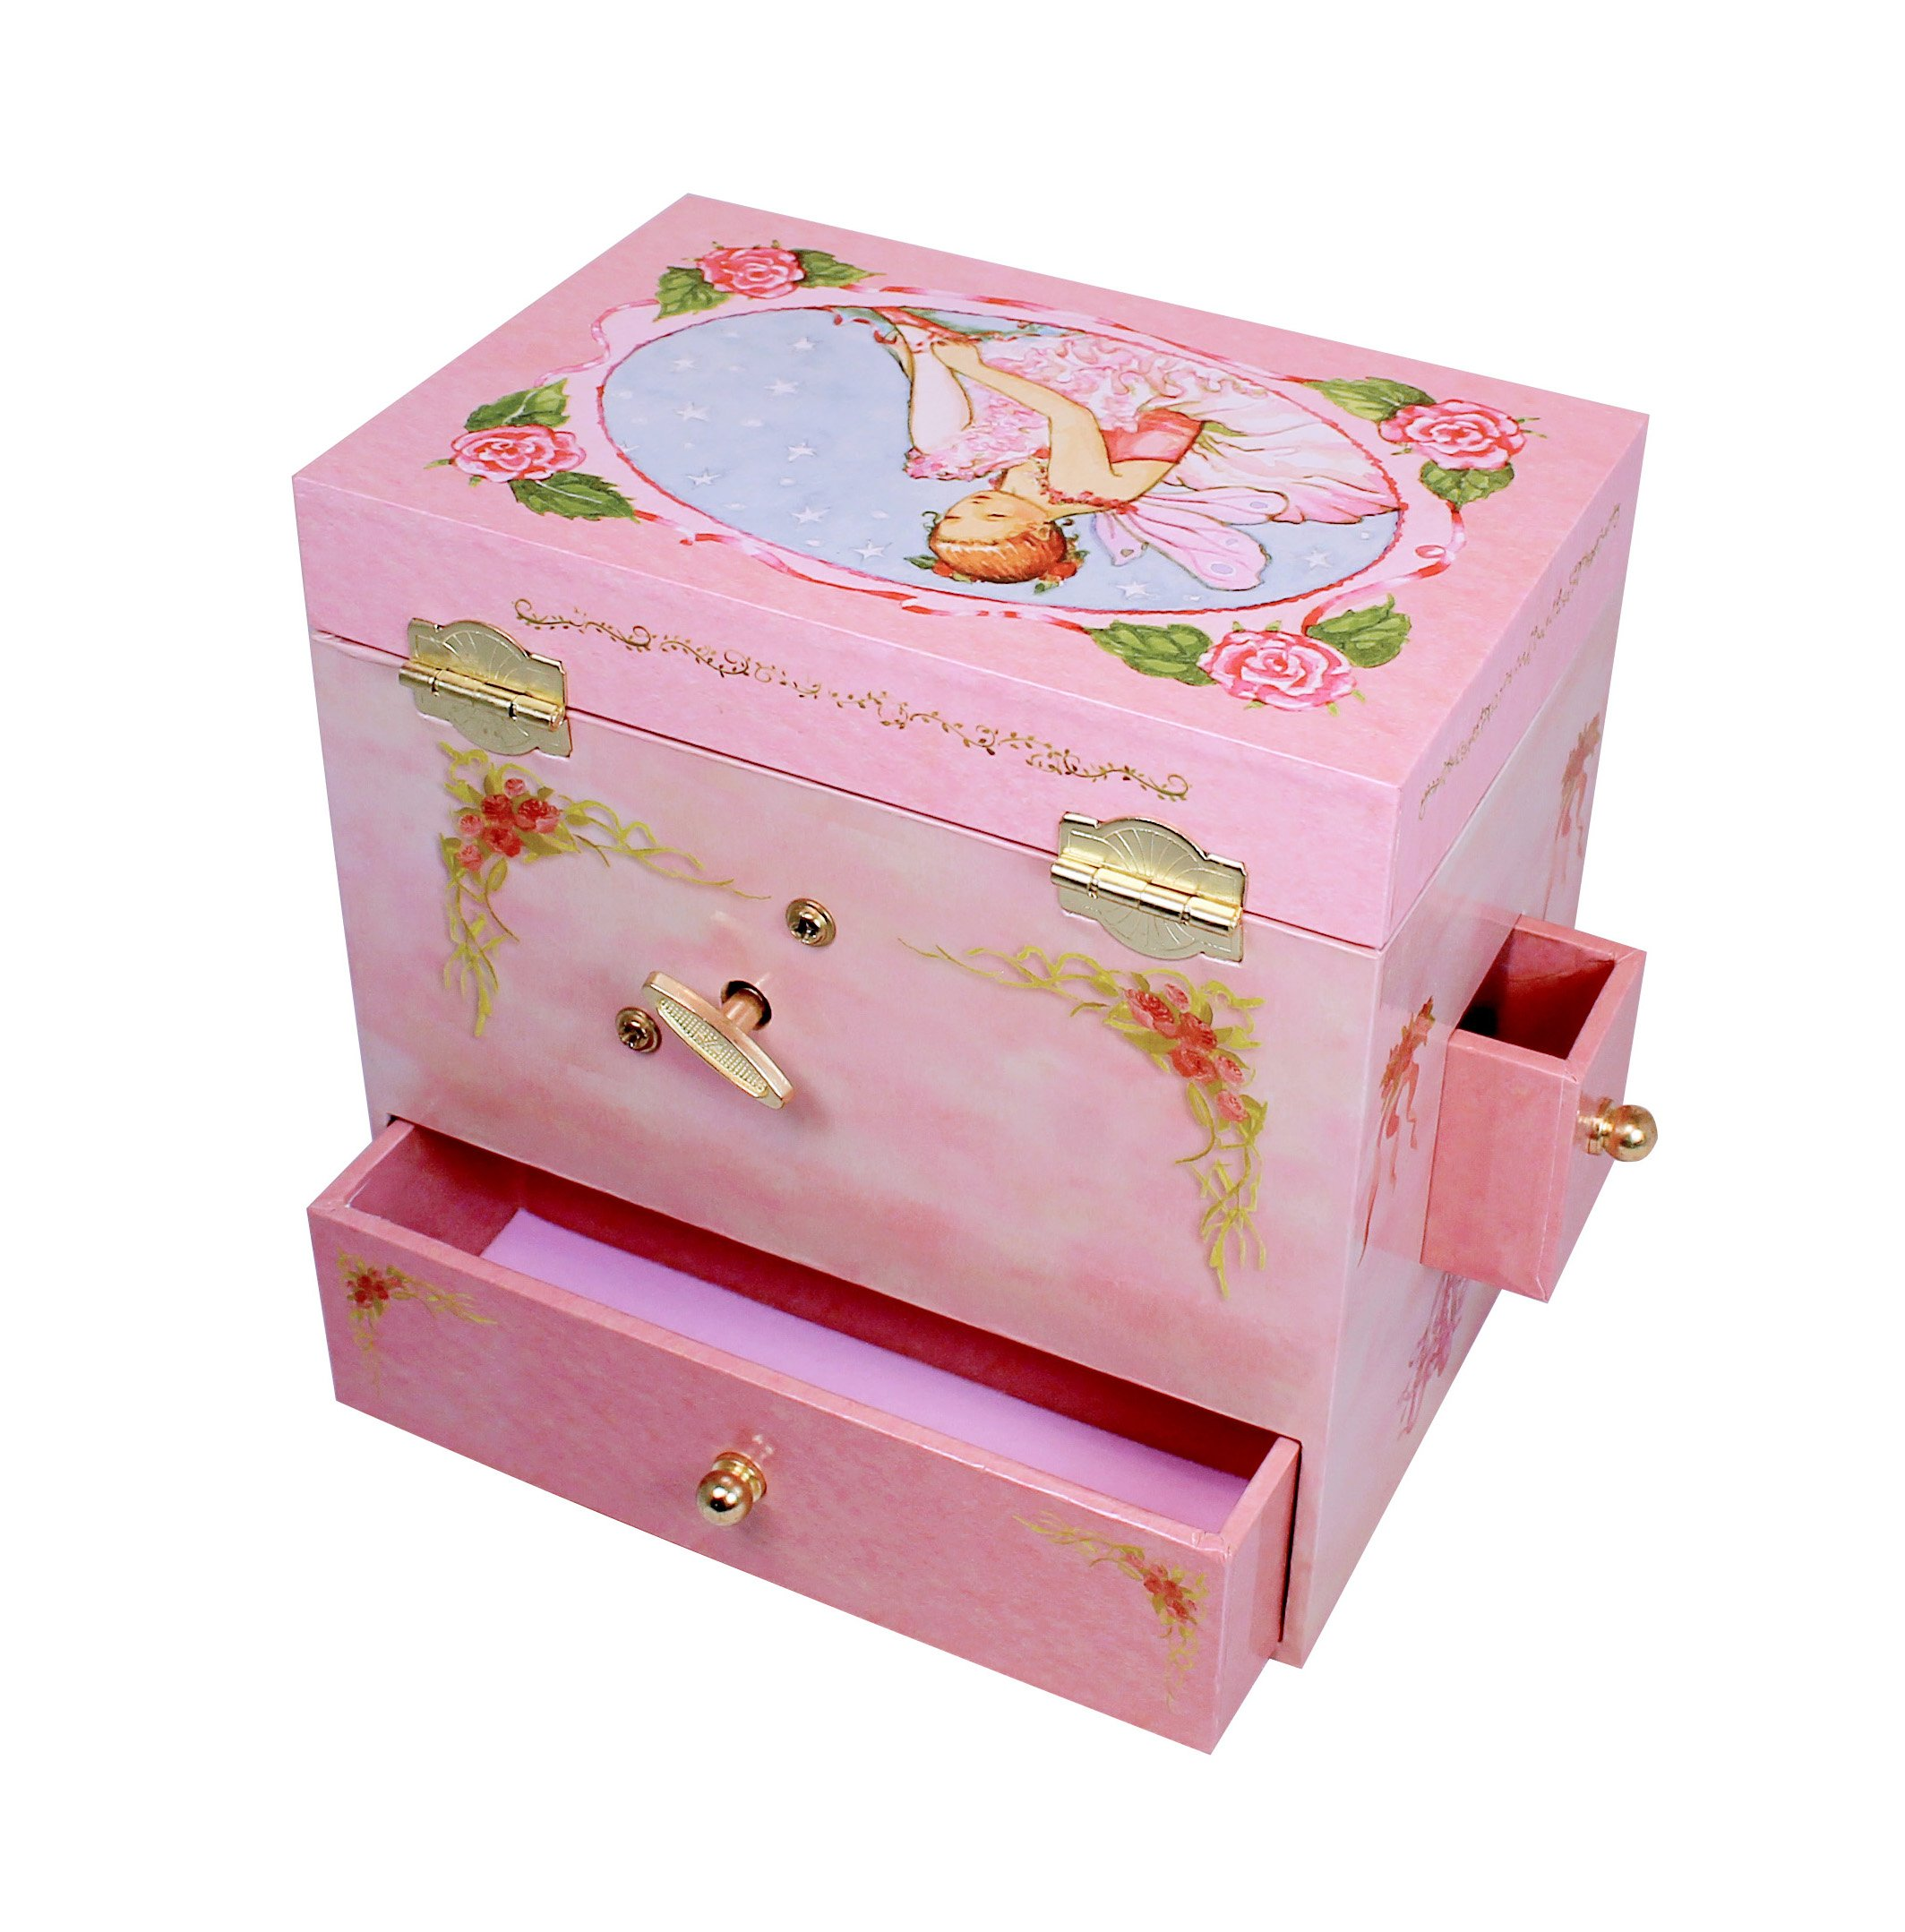 Enchantmints ballerina musical jewelry box amazon for Amazon ballerina musical jewelry box